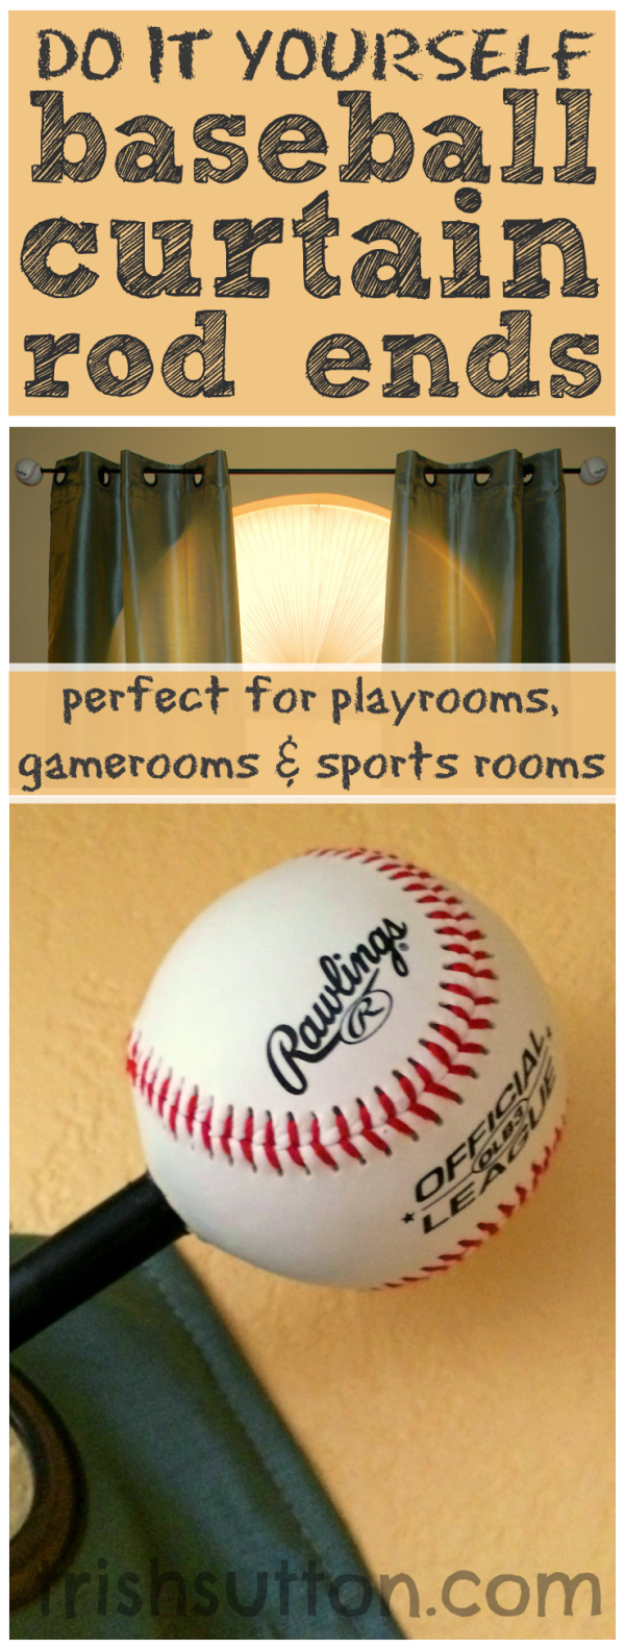 DIY Room Decor for Boys - DIY Baseball Curtain Rod Ends - Best Creative Bedroom Ideas for Boy Rooms - Wall Art, Lamps, Rugs, Lamps, Beds, Bedding and Furniture You Can Make for Teens, Tweens and Teenagers #diy #homedecor #boys